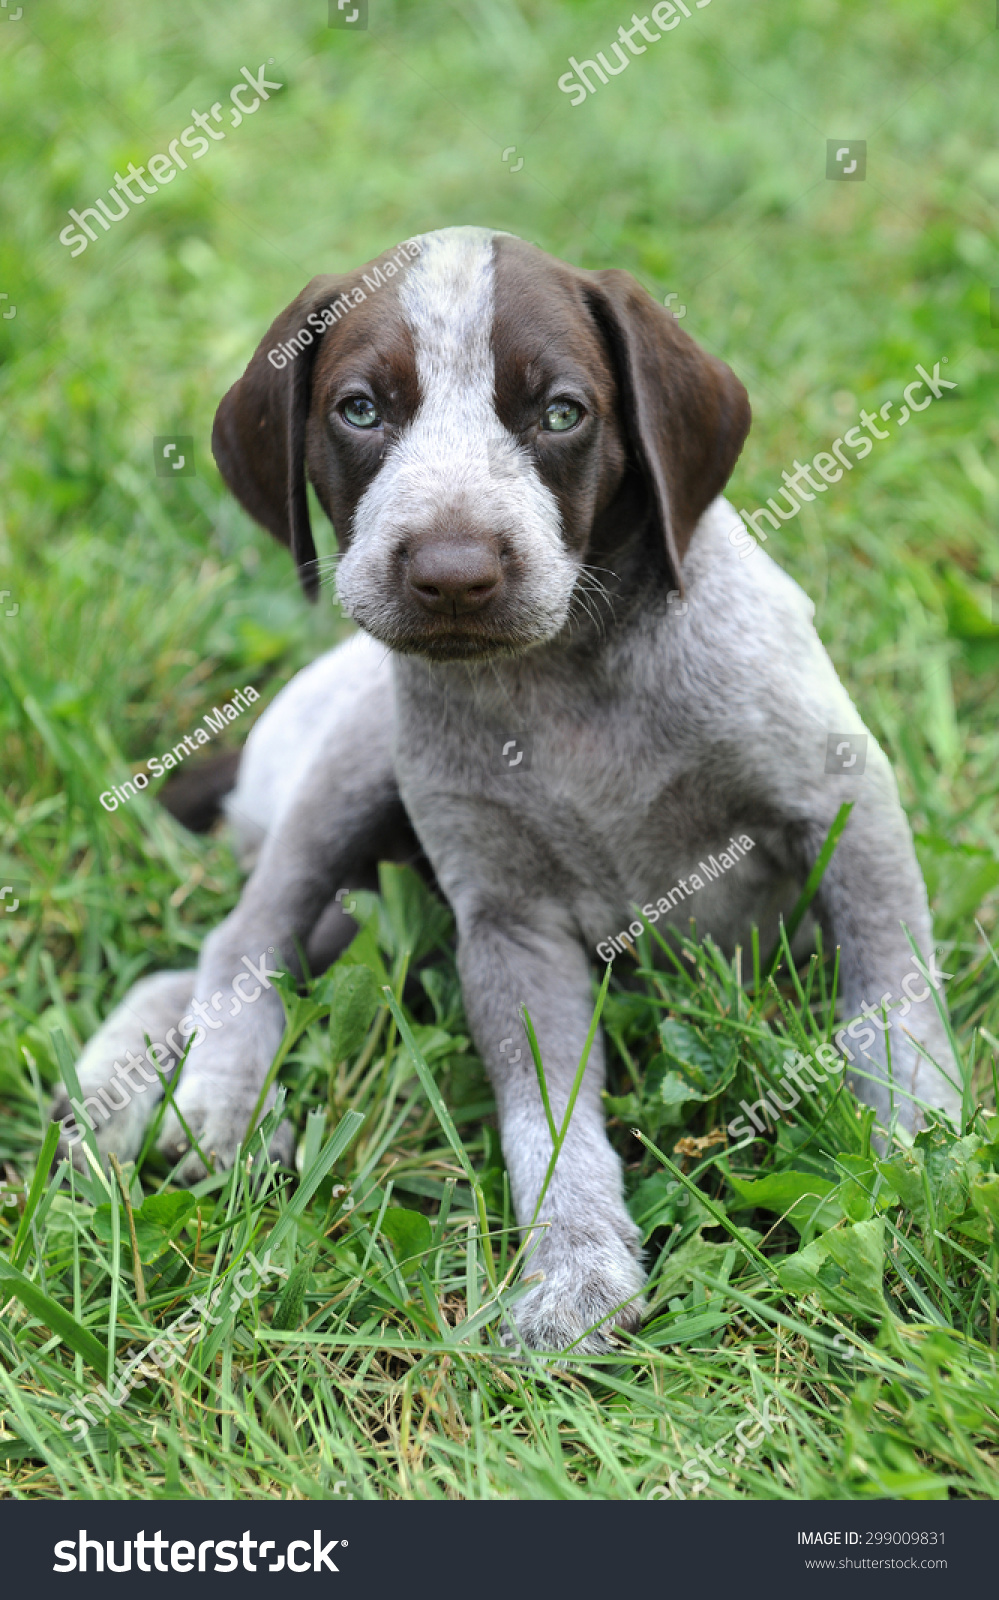 German Short Haired Pointer Puppy Laying Stock Photo & Image ...